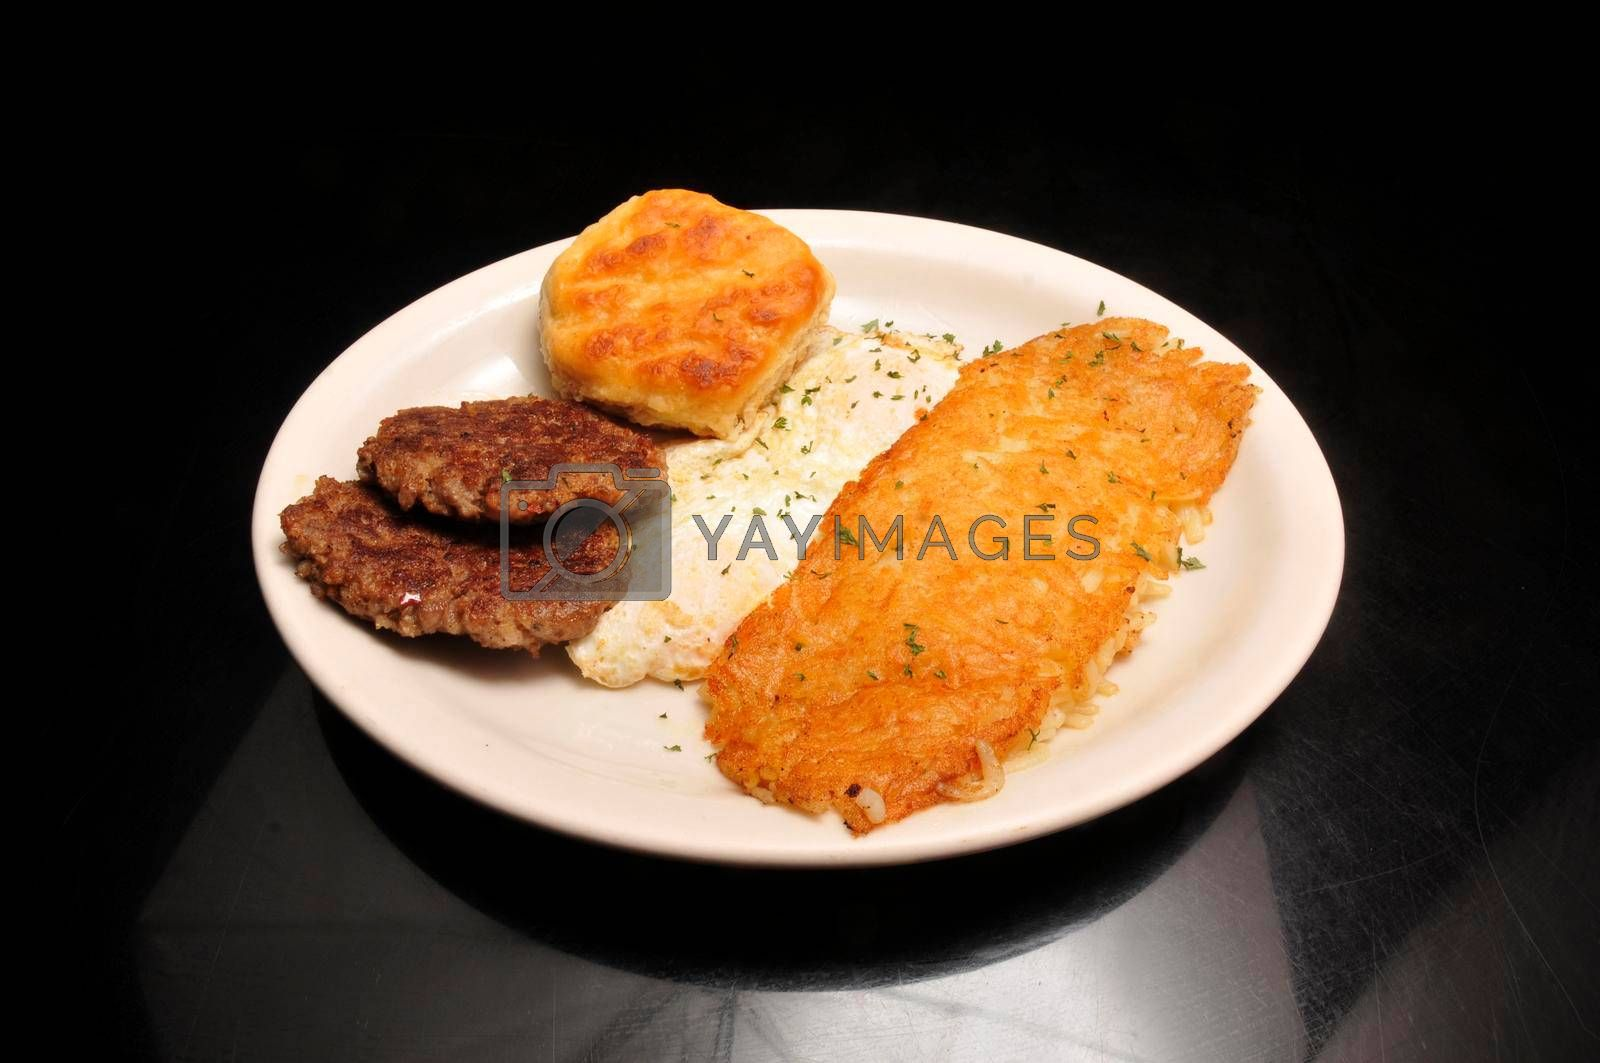 Delicious breakfast of Eggs Sausage Hash Browns and a biscuit